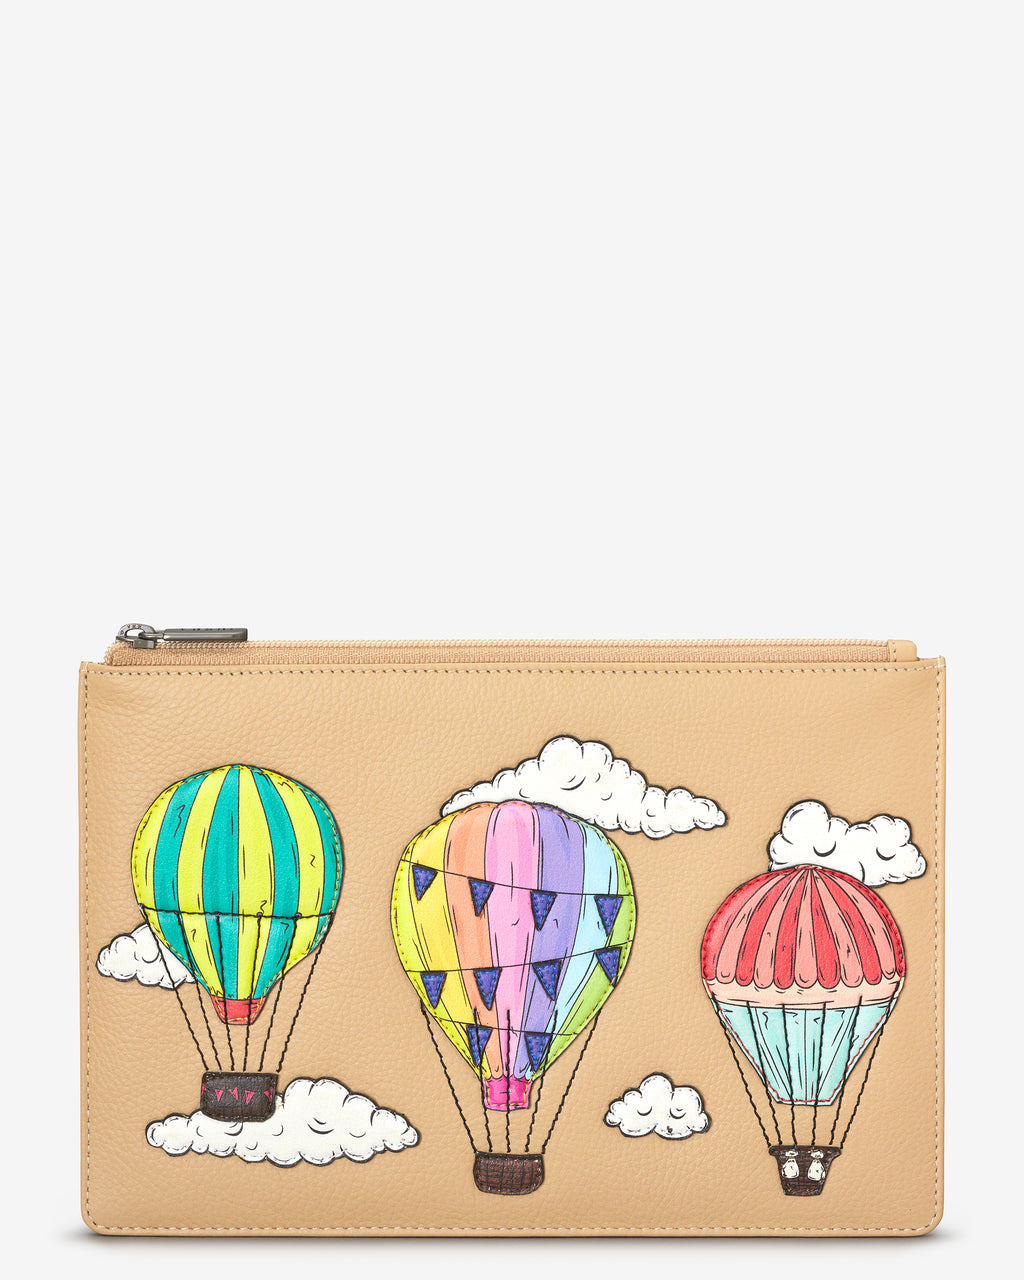 Amongst The Clouds Zip Top Leather Pouch